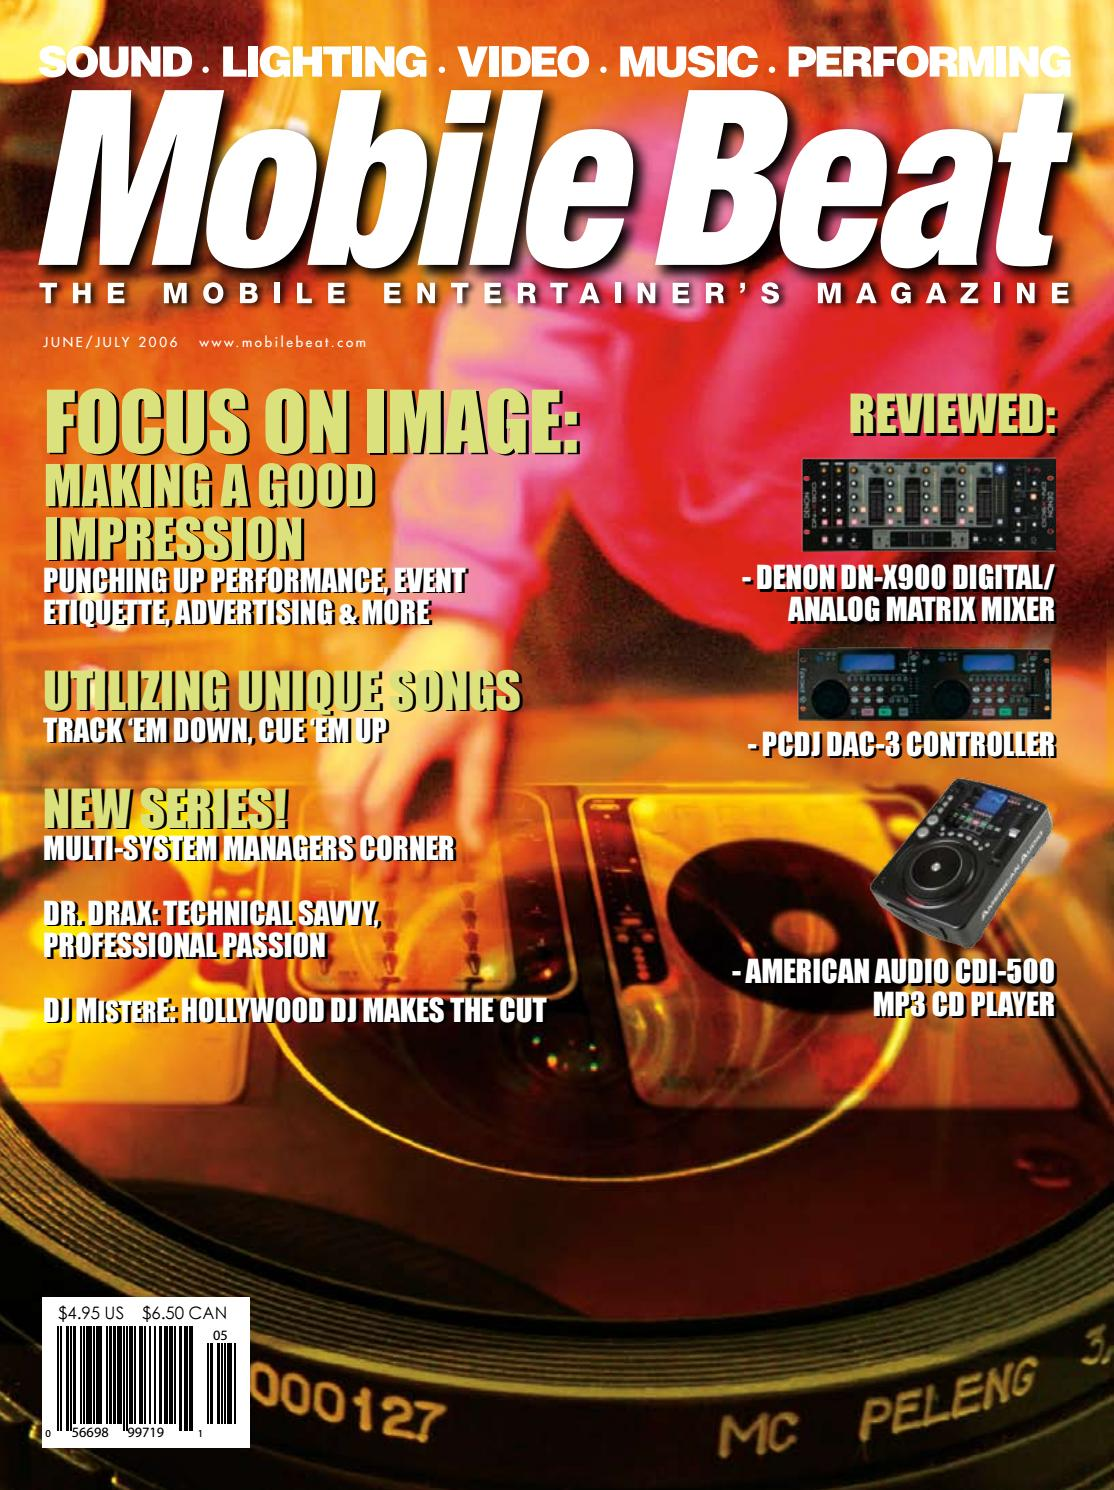 Issue 102 - June/July 2006 - Focus On Image: Making a Good